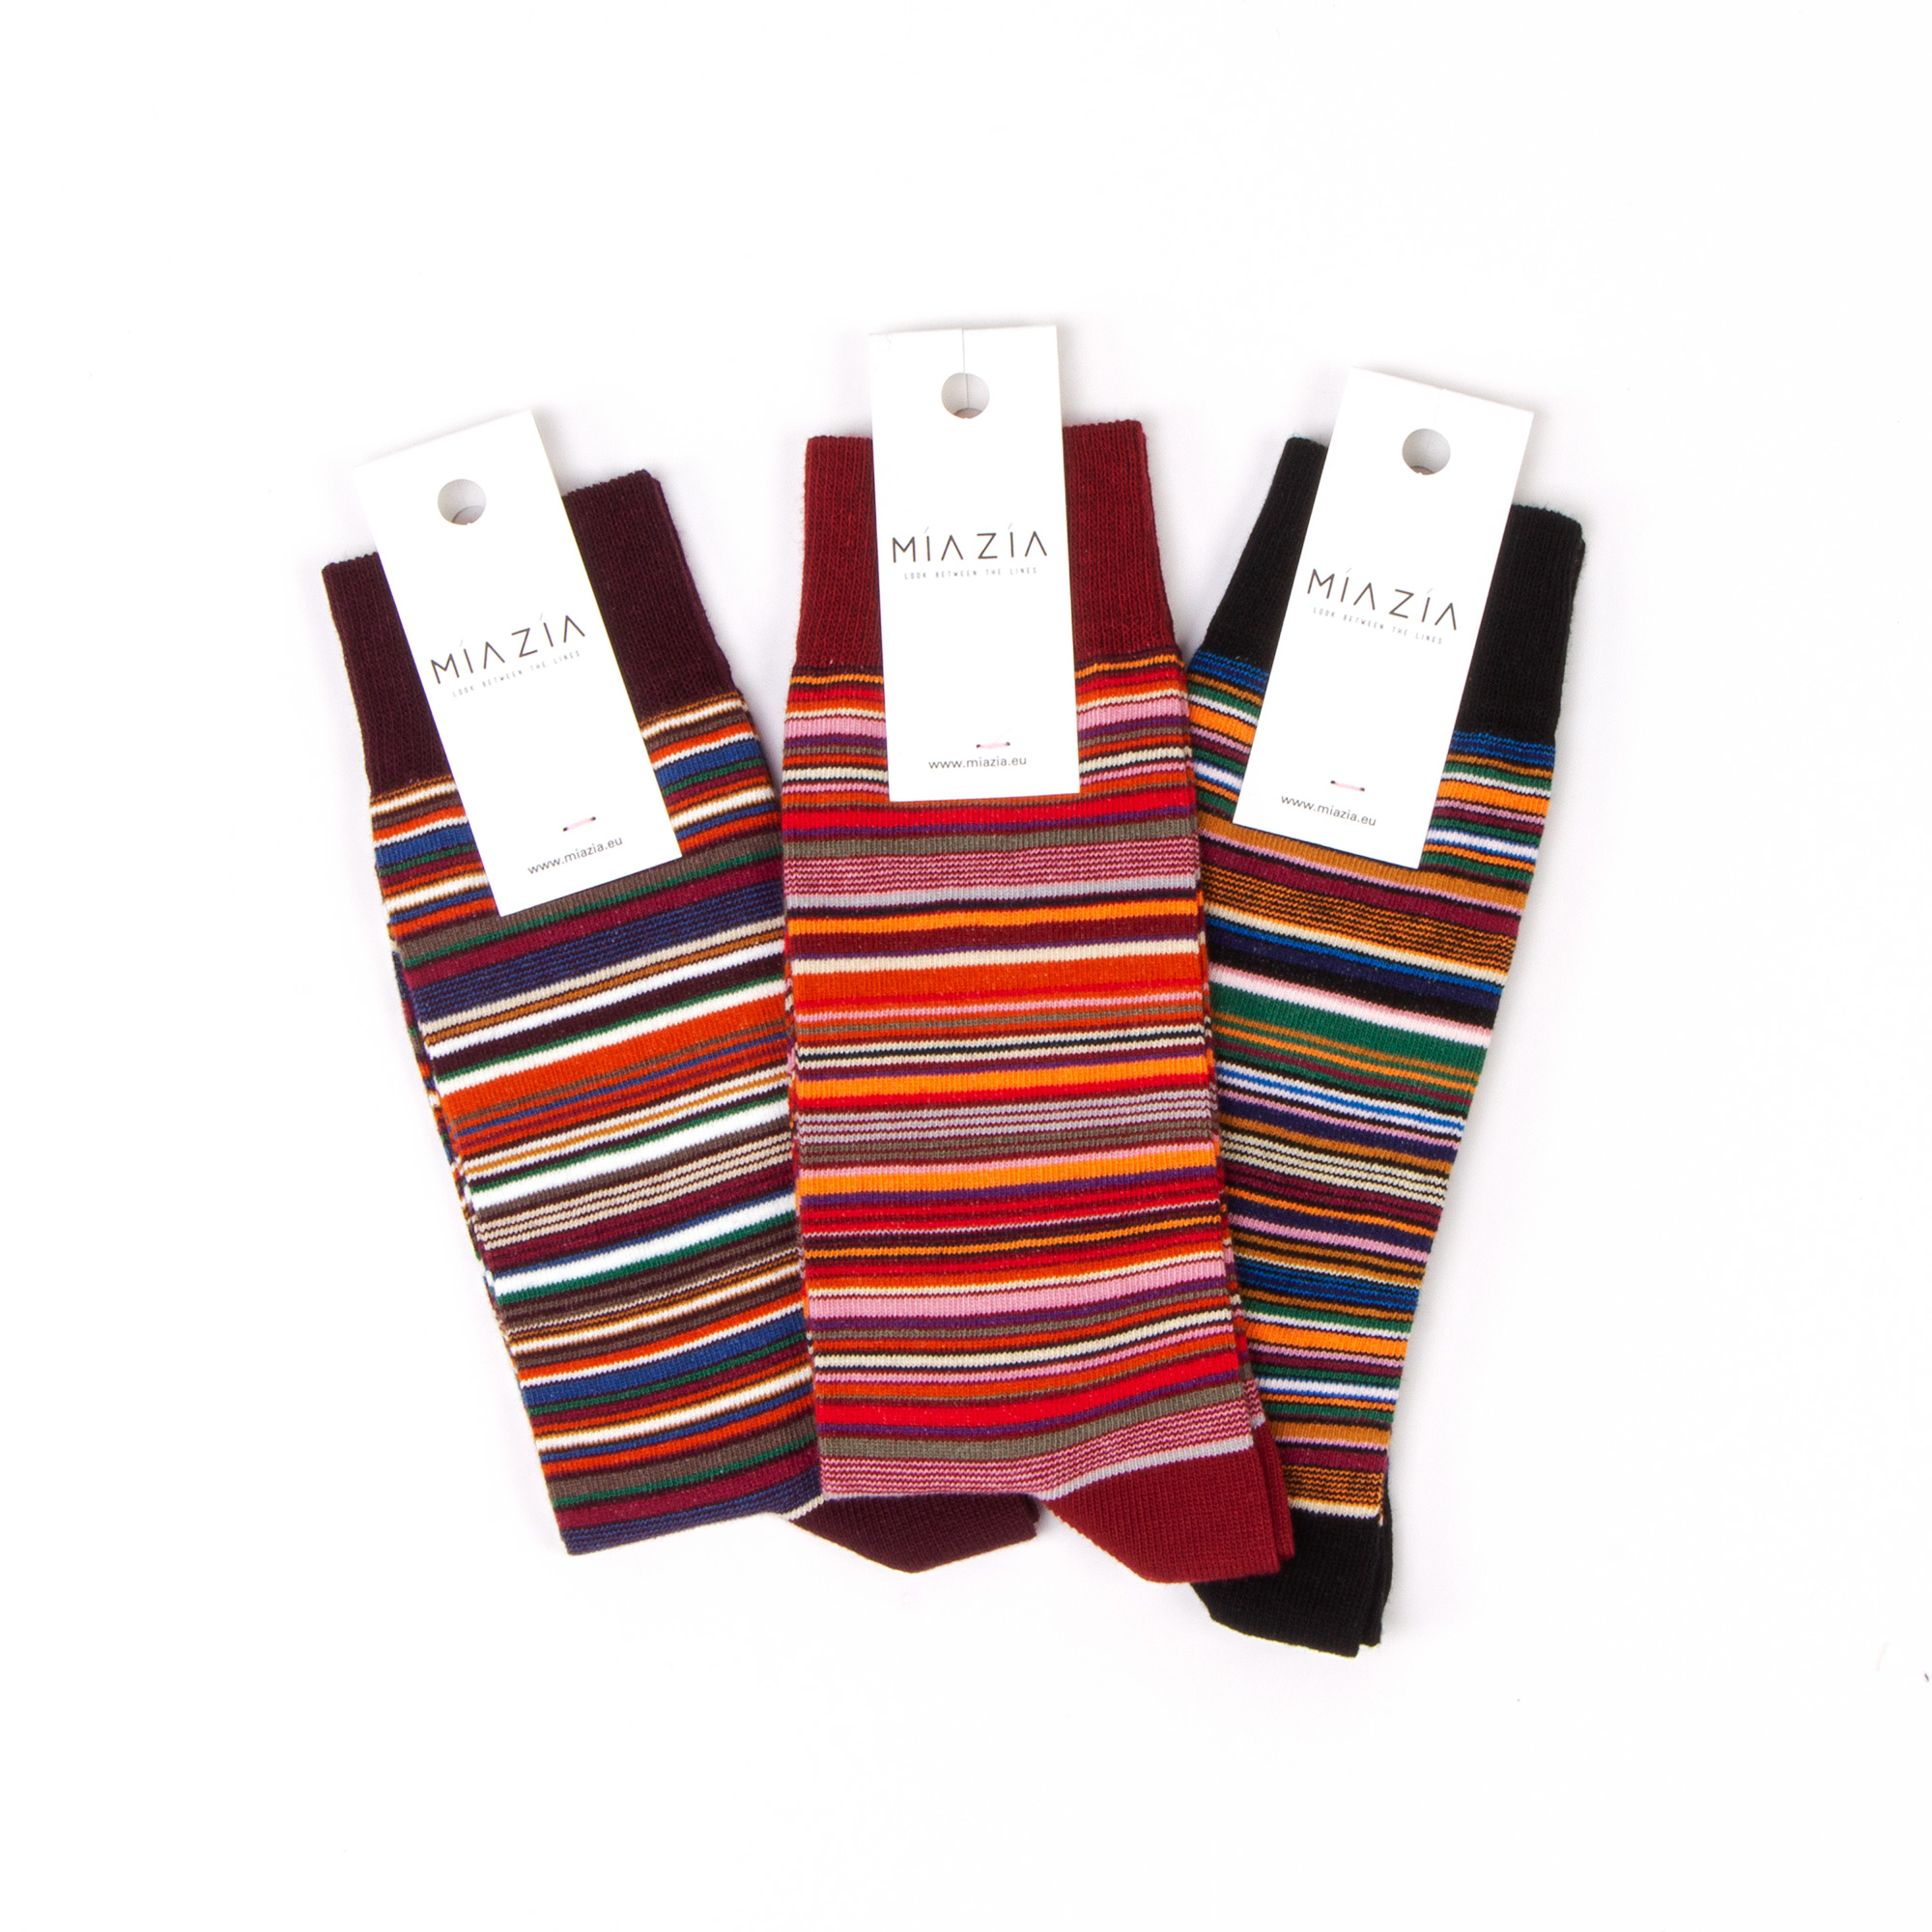 Socks with stripes for women